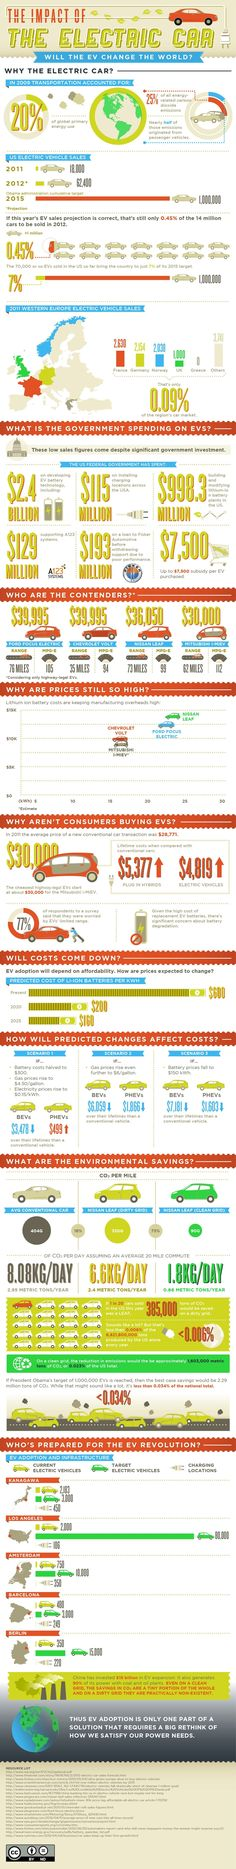 The impact of The electric car #infographic